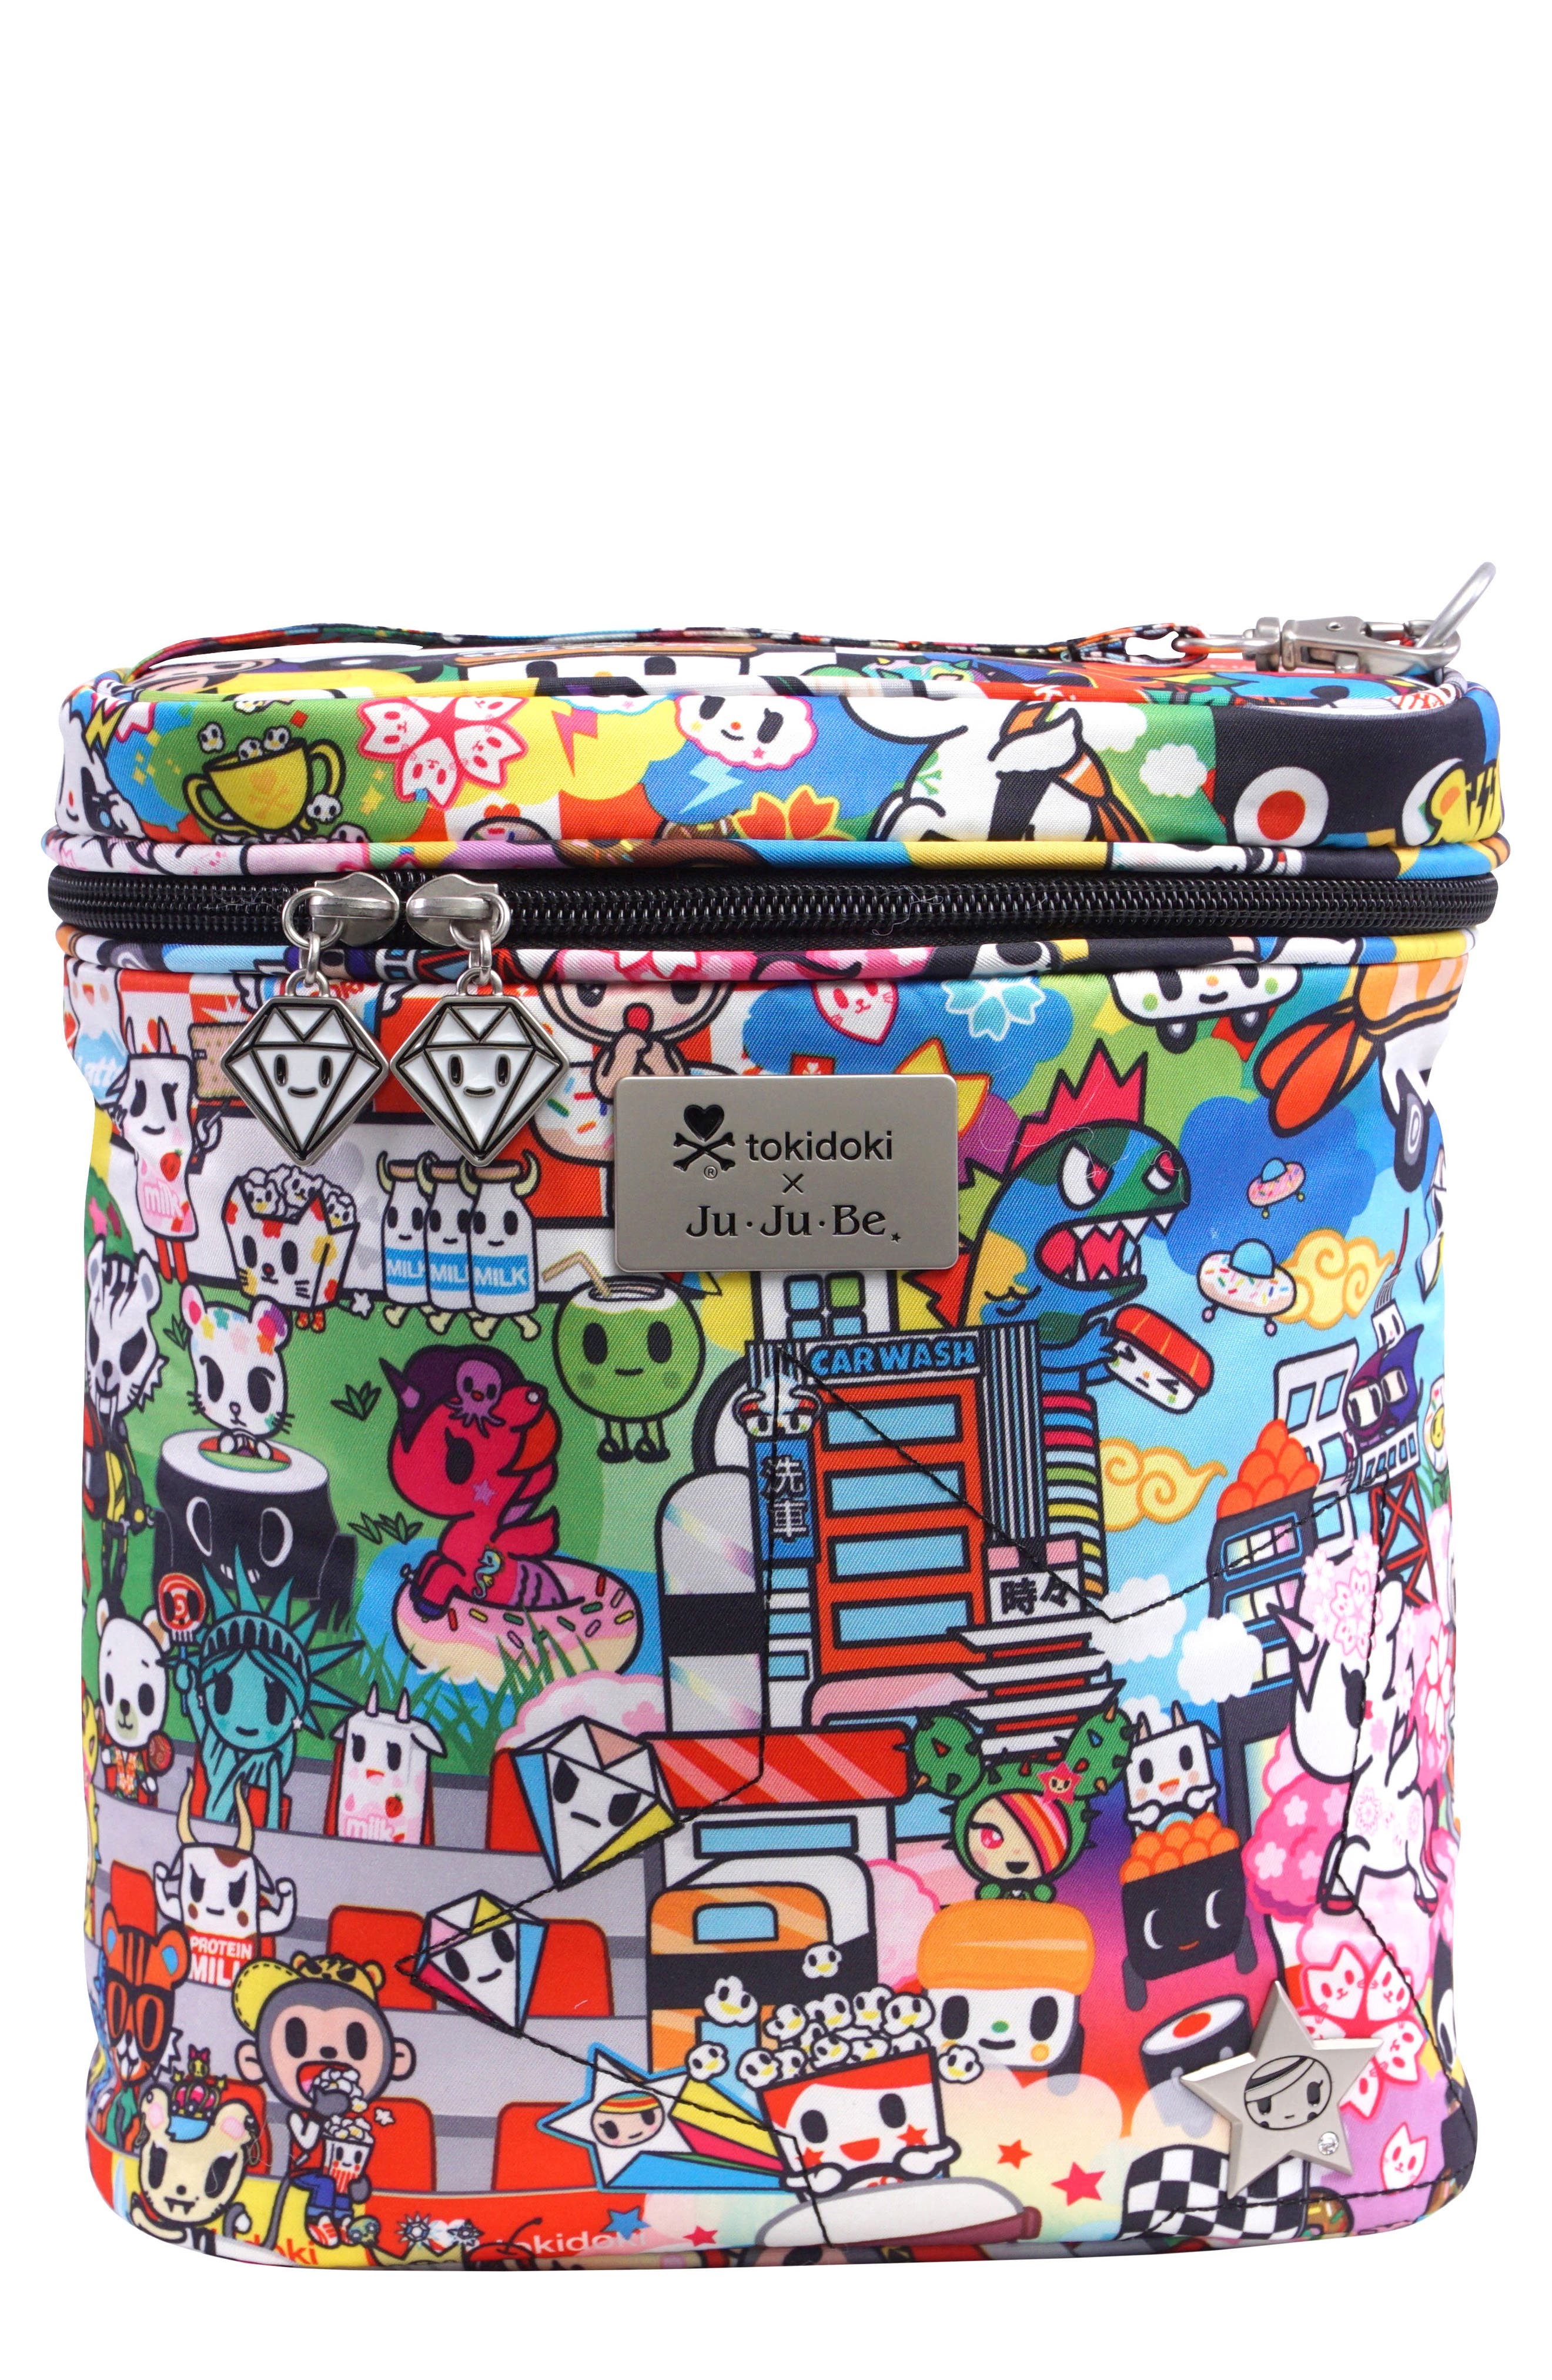 tokidoki x Ju-Ju-Be 'Fuel Cell' Lunch Bag,                         Main,                         color, 100